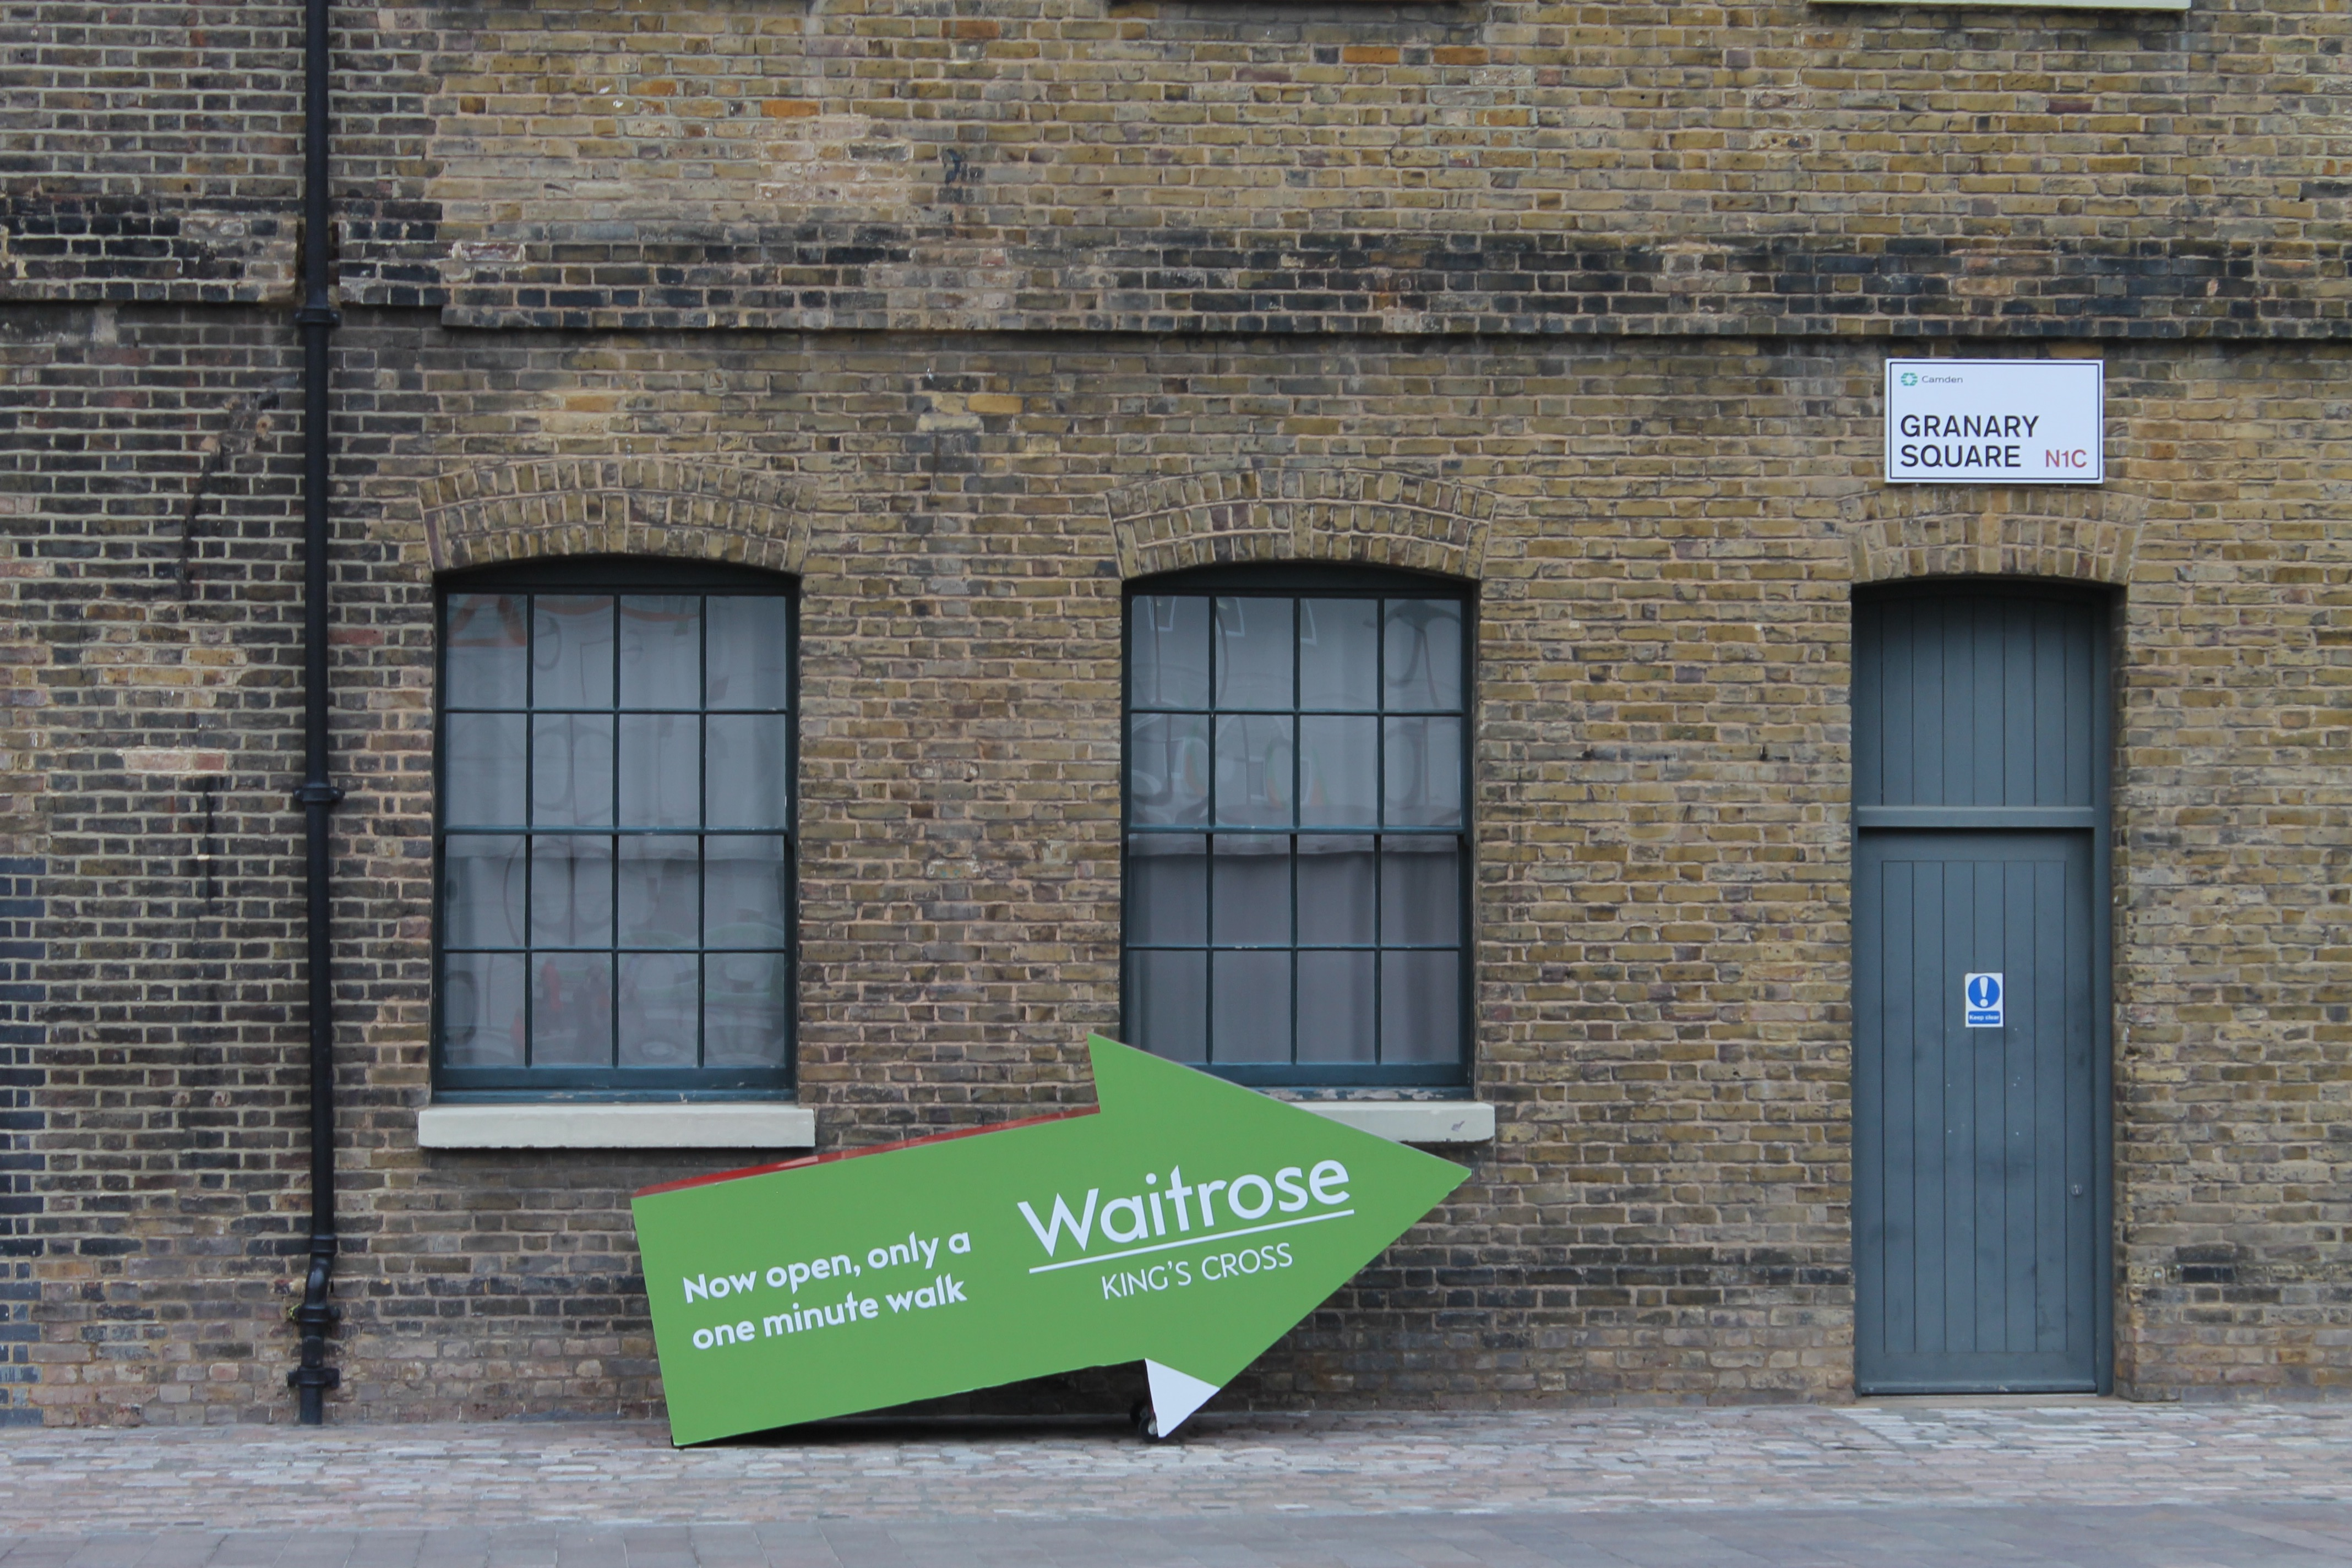 Kings Cross Waitrose 6